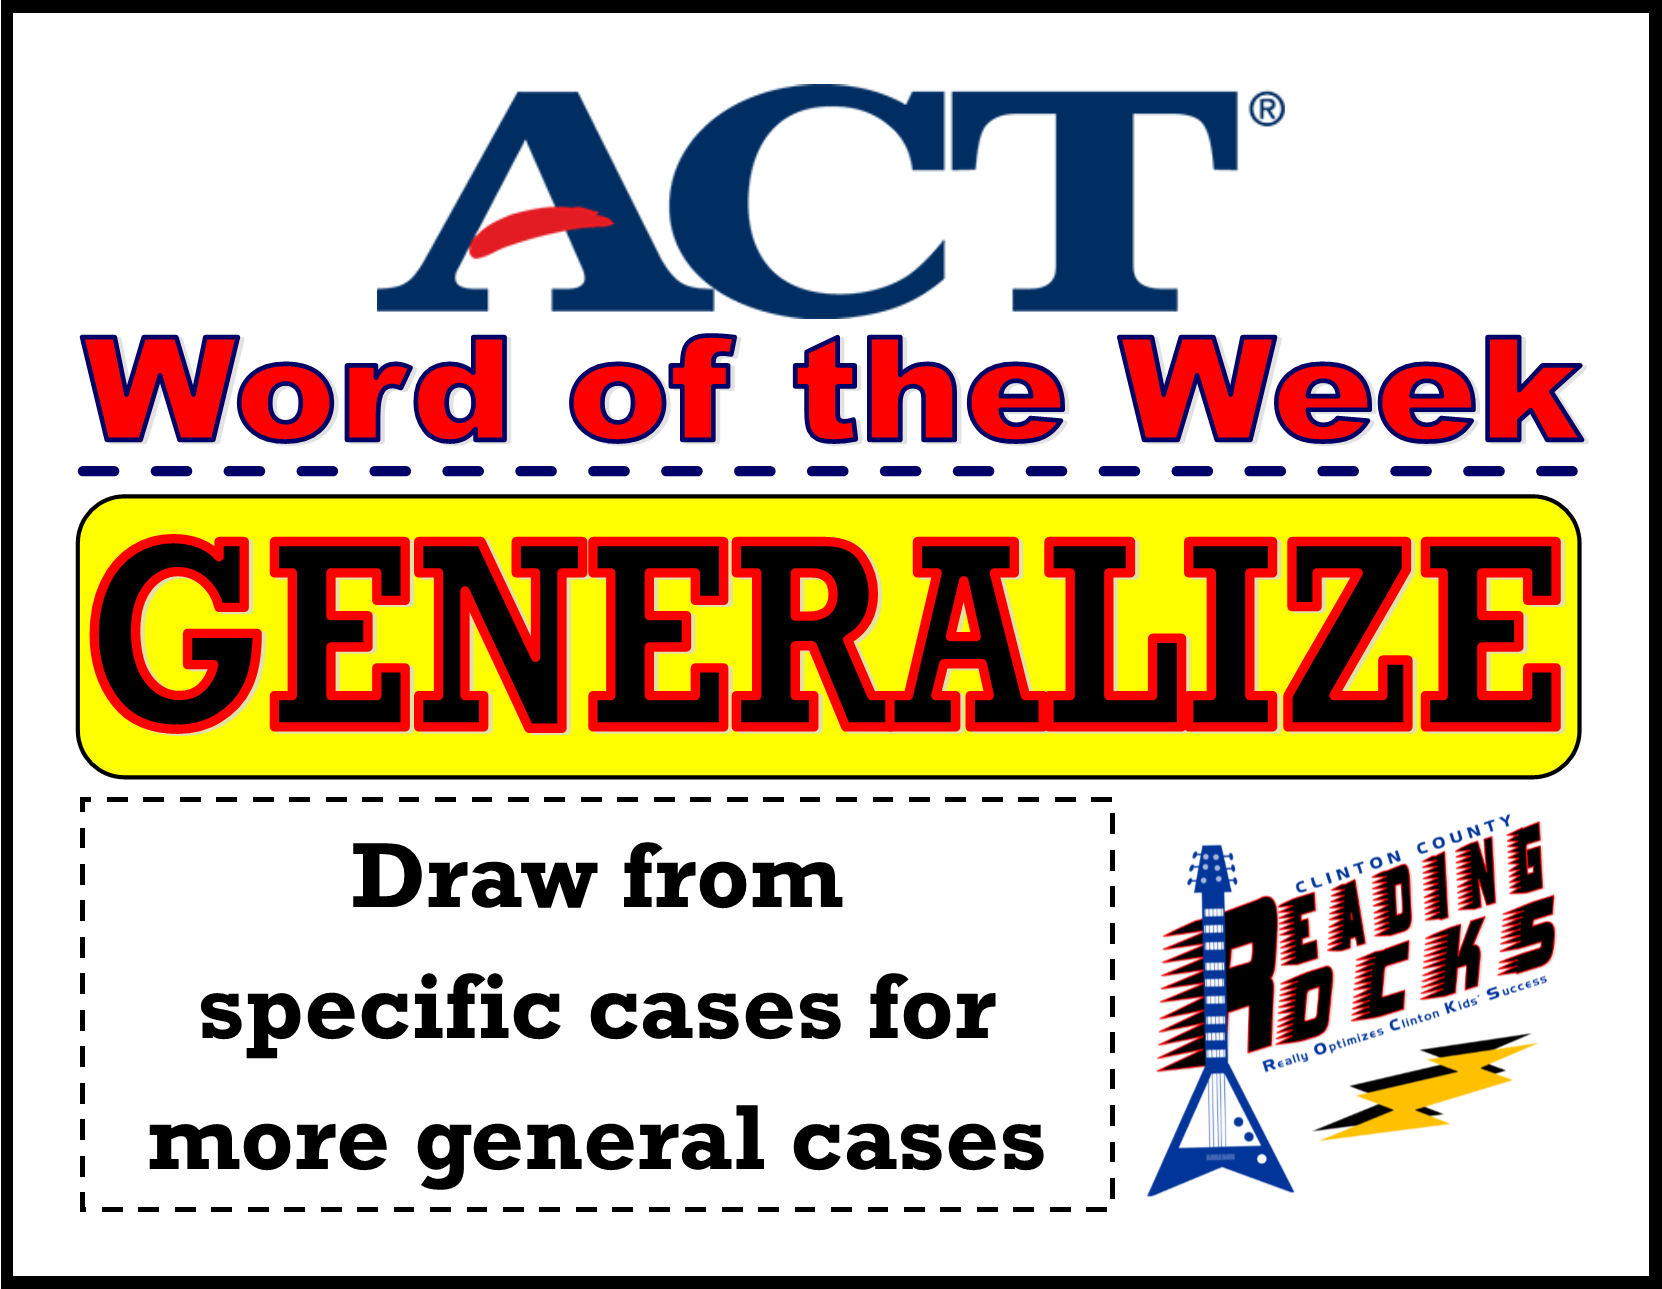 The CCHS Reading ROCKS ACT Word of the Week is - GENERALIZE!